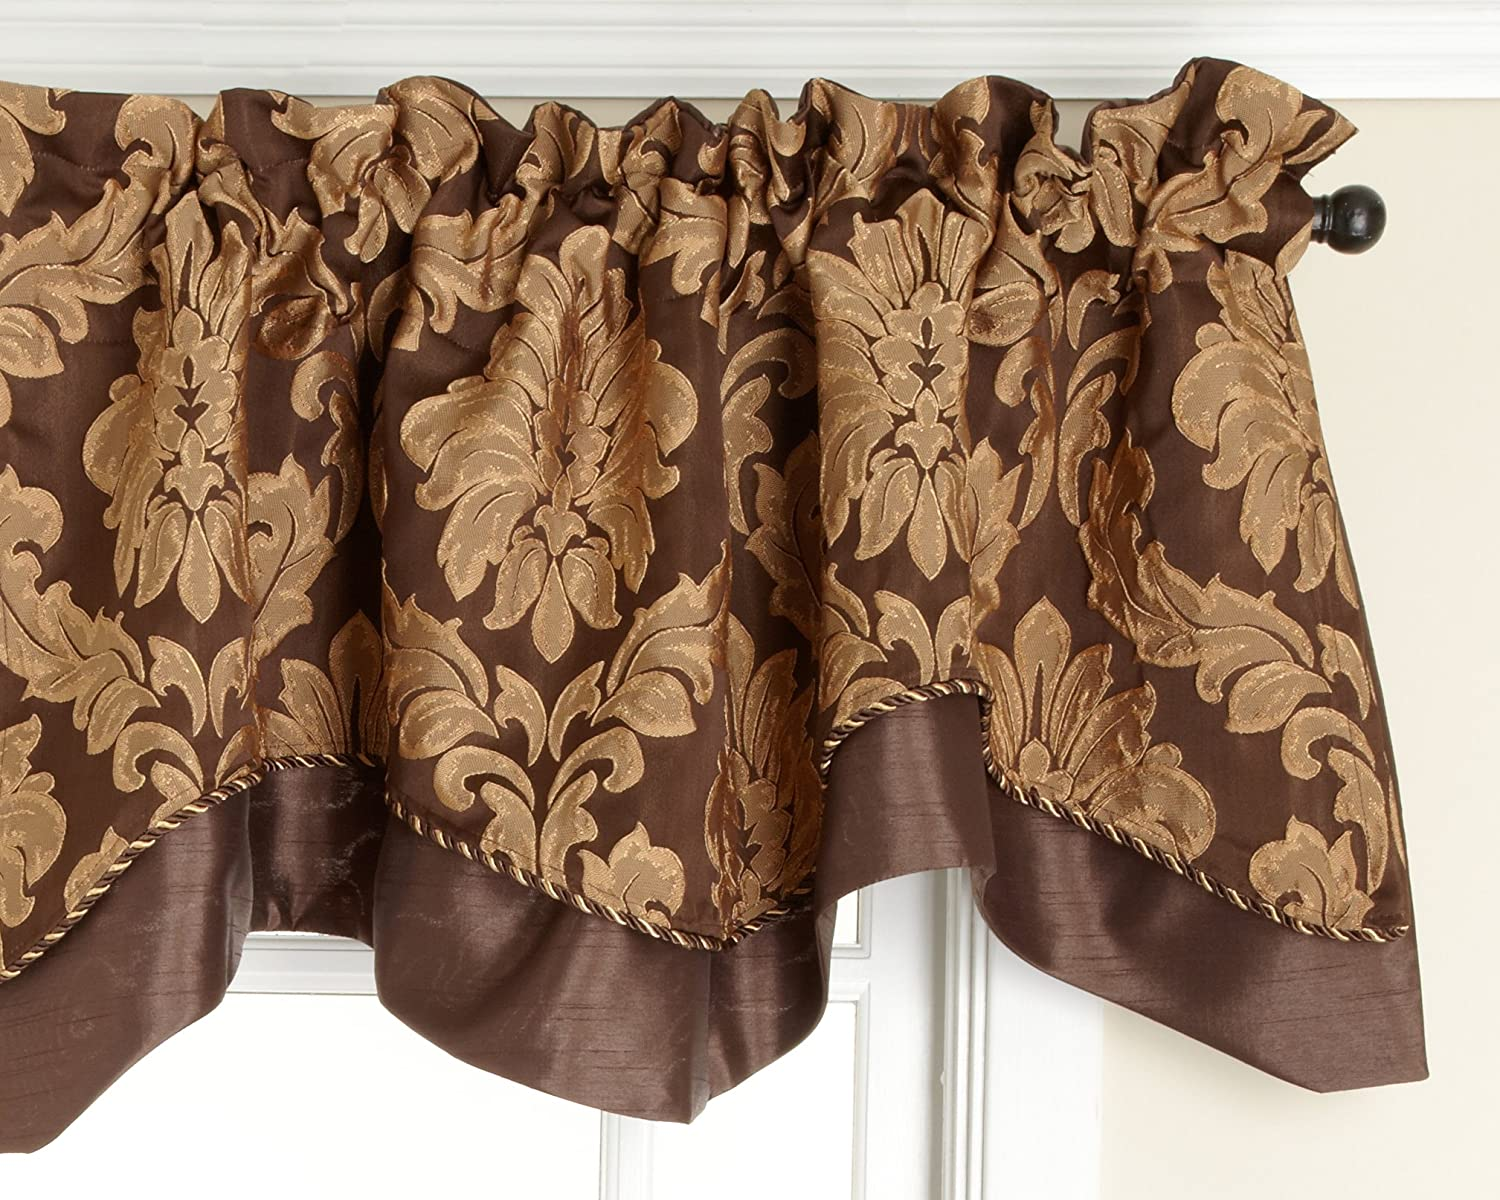 Renaissance Home Fashion Cooper Lined Scalloped Valance with Cording, Chocolate, 50 by 17-Inch Stylemaster Home Products